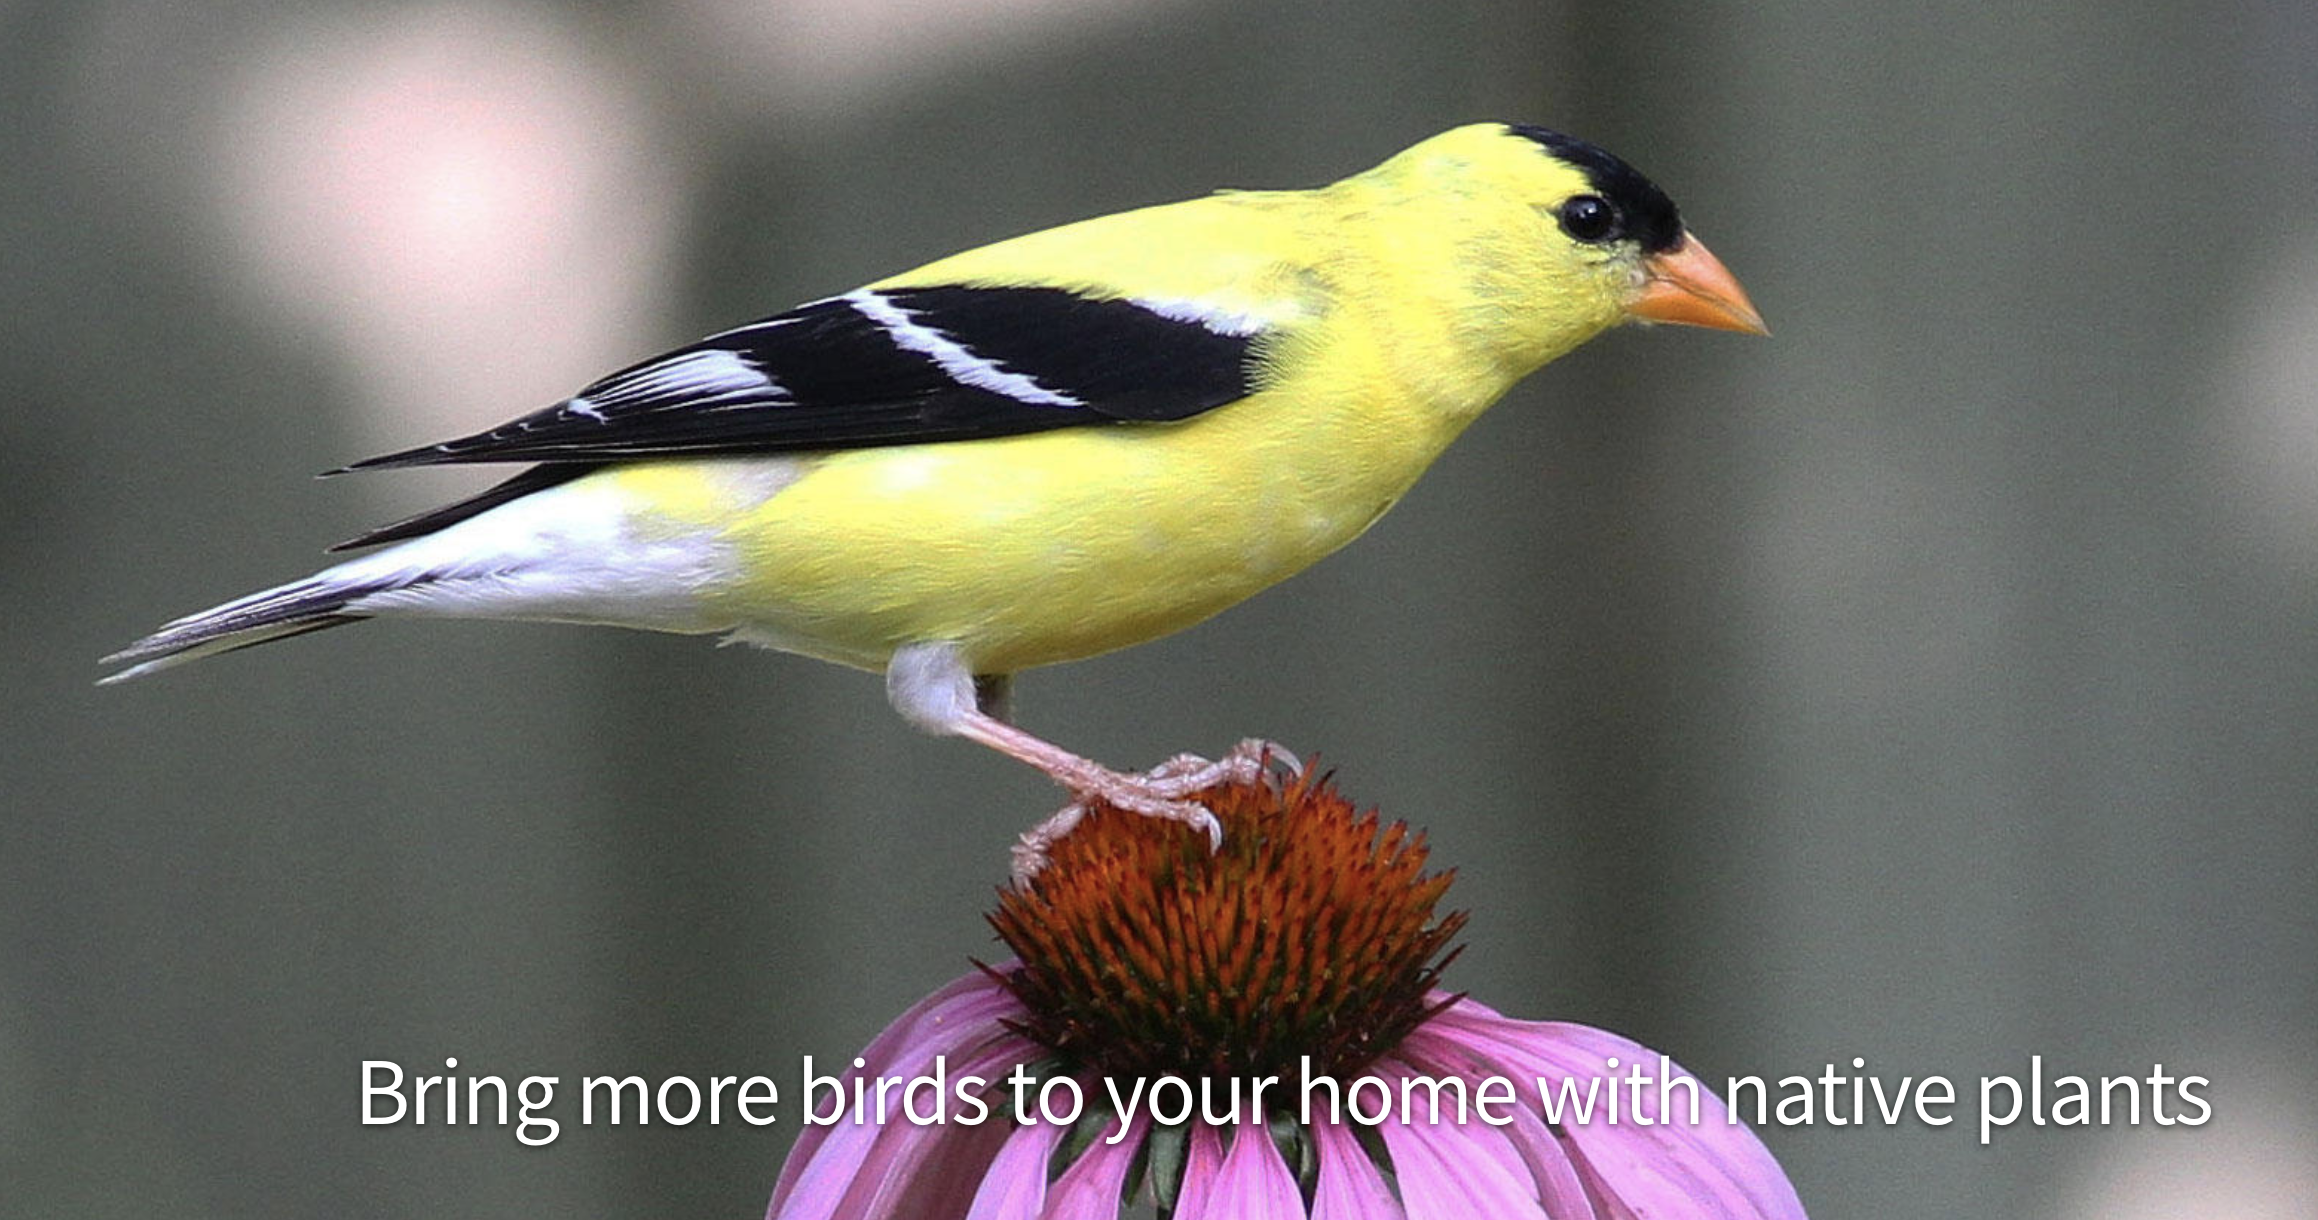 Audubon Native Plants Database - Click here and enter your 5-digit zip code to use Audubon's native plants database and explore the best plants for birds in your area.